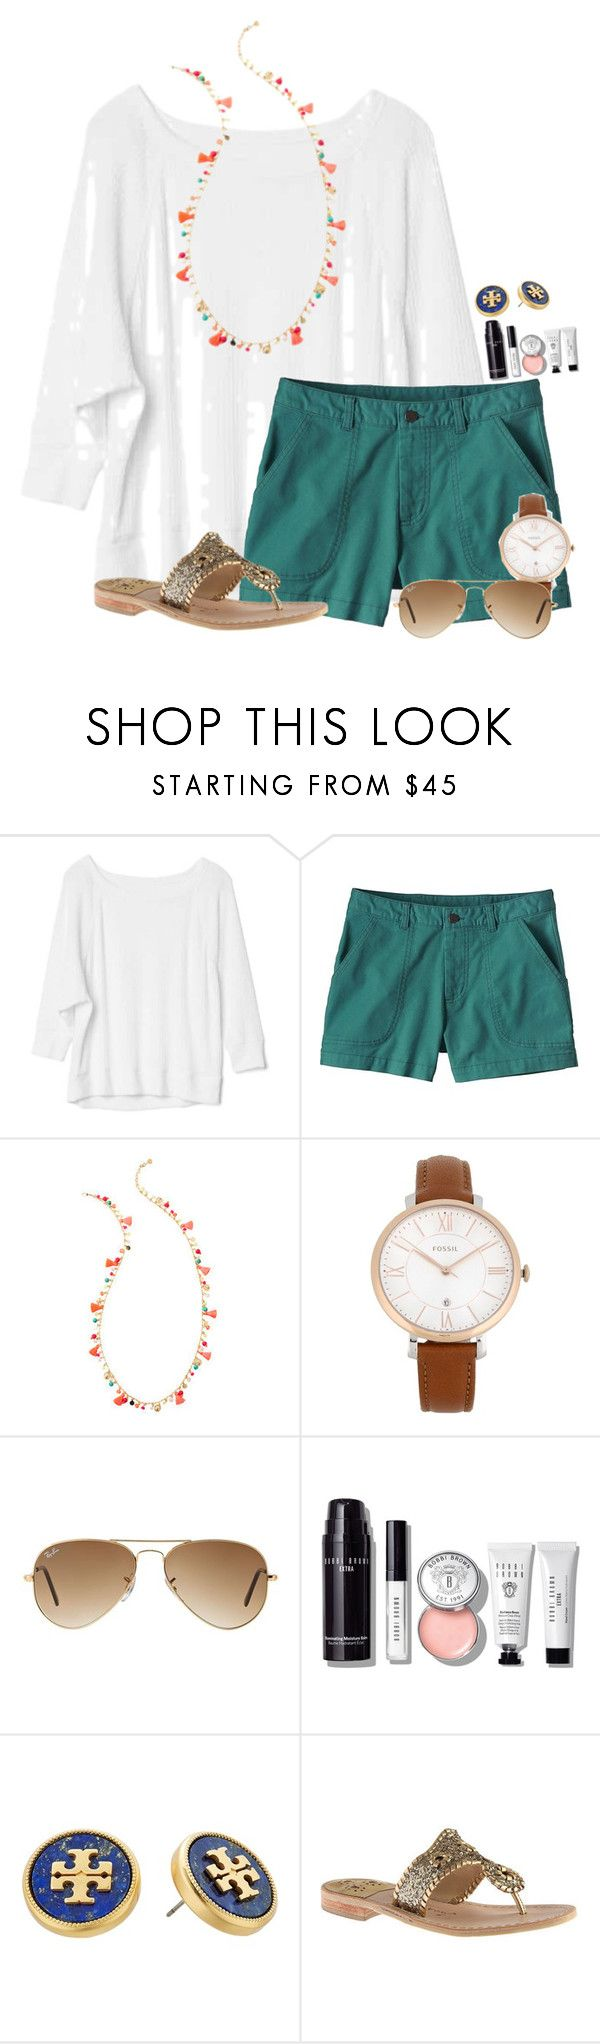 """""""Pizza party tonight """" by flroasburn ❤ liked on Polyvore featuring Gap, Patagonia, Lilly Pulitzer, FOSSIL, Ray-Ban, Bobbi Brown Cosmetics, Tory Burch and Jack Rogers"""